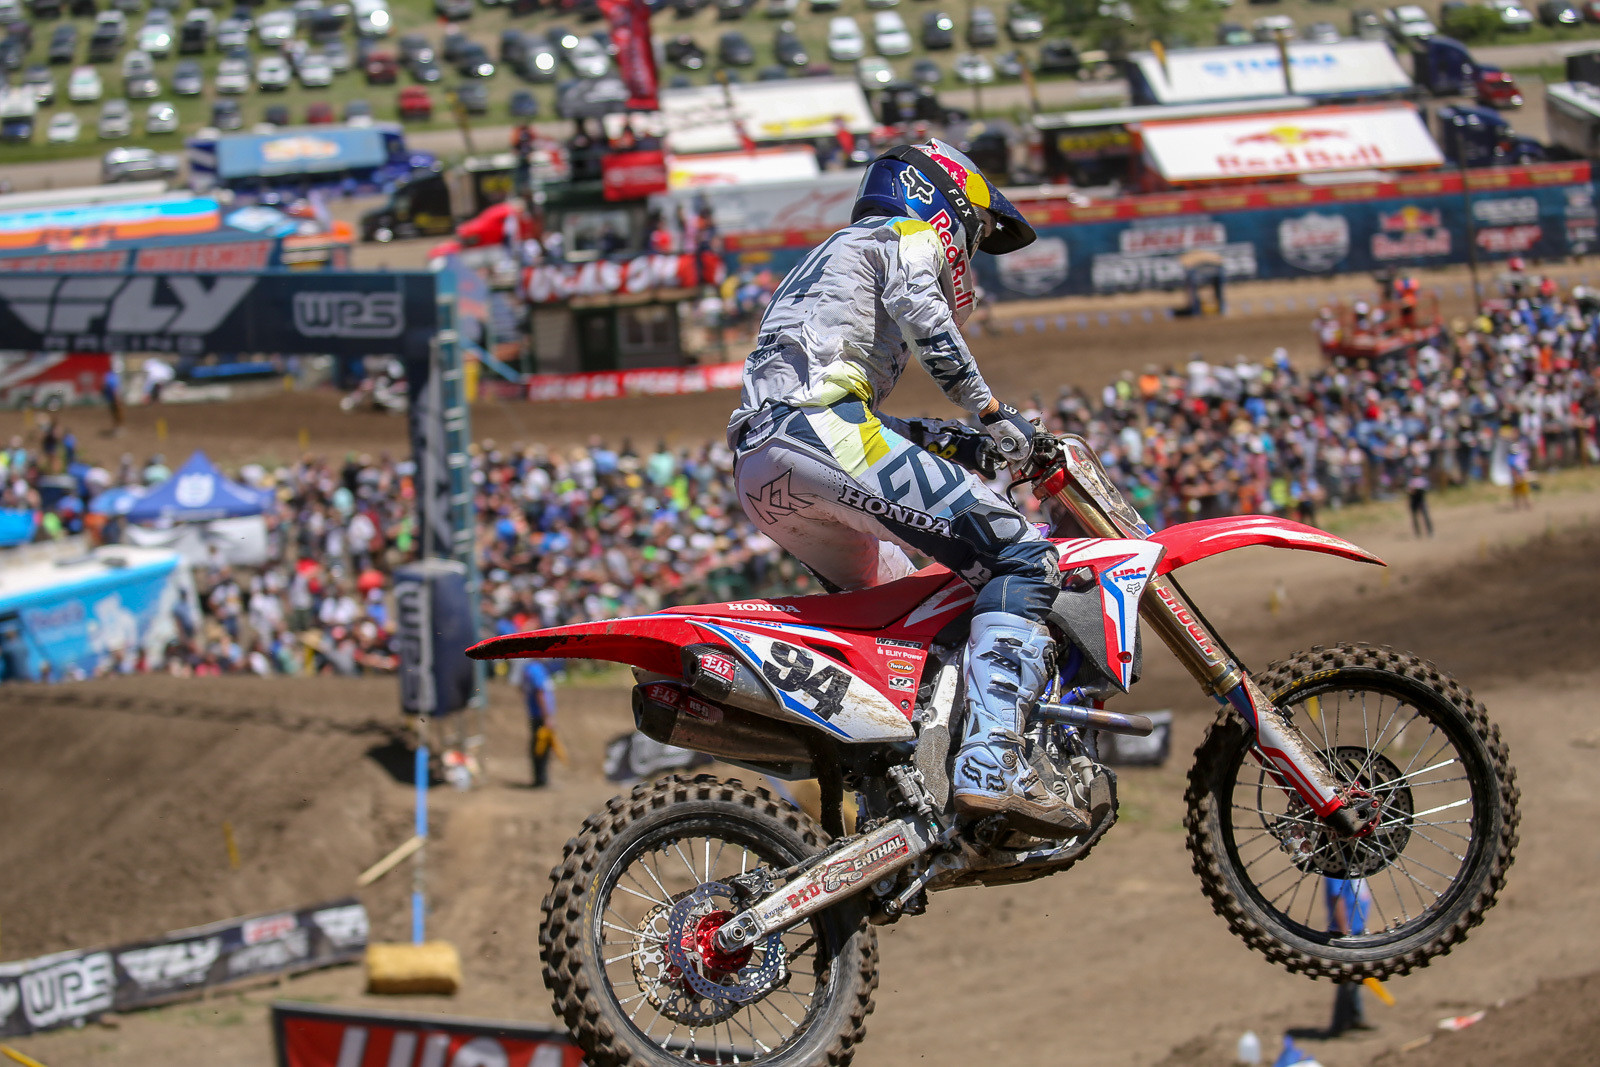 Ken Roczen is definitely ahead of where he thought he'd be as he started the season, and the break comes at a good time to give his hands some rest.